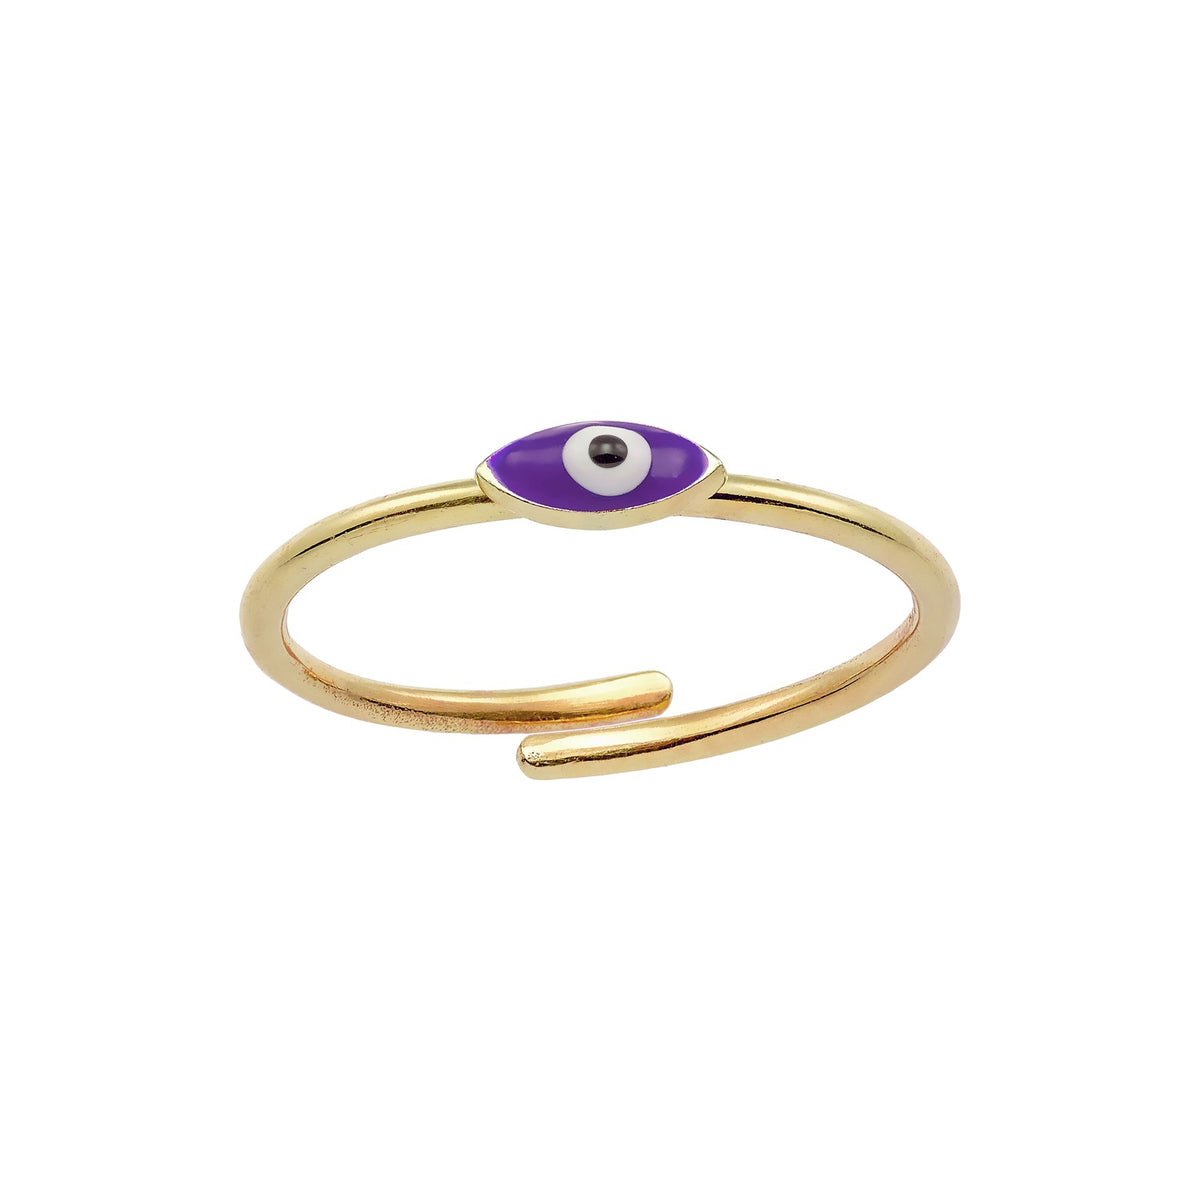 MATI | Tiny Marquise Ring | Violet Enamel | 18K Gold Plated 925 Silver